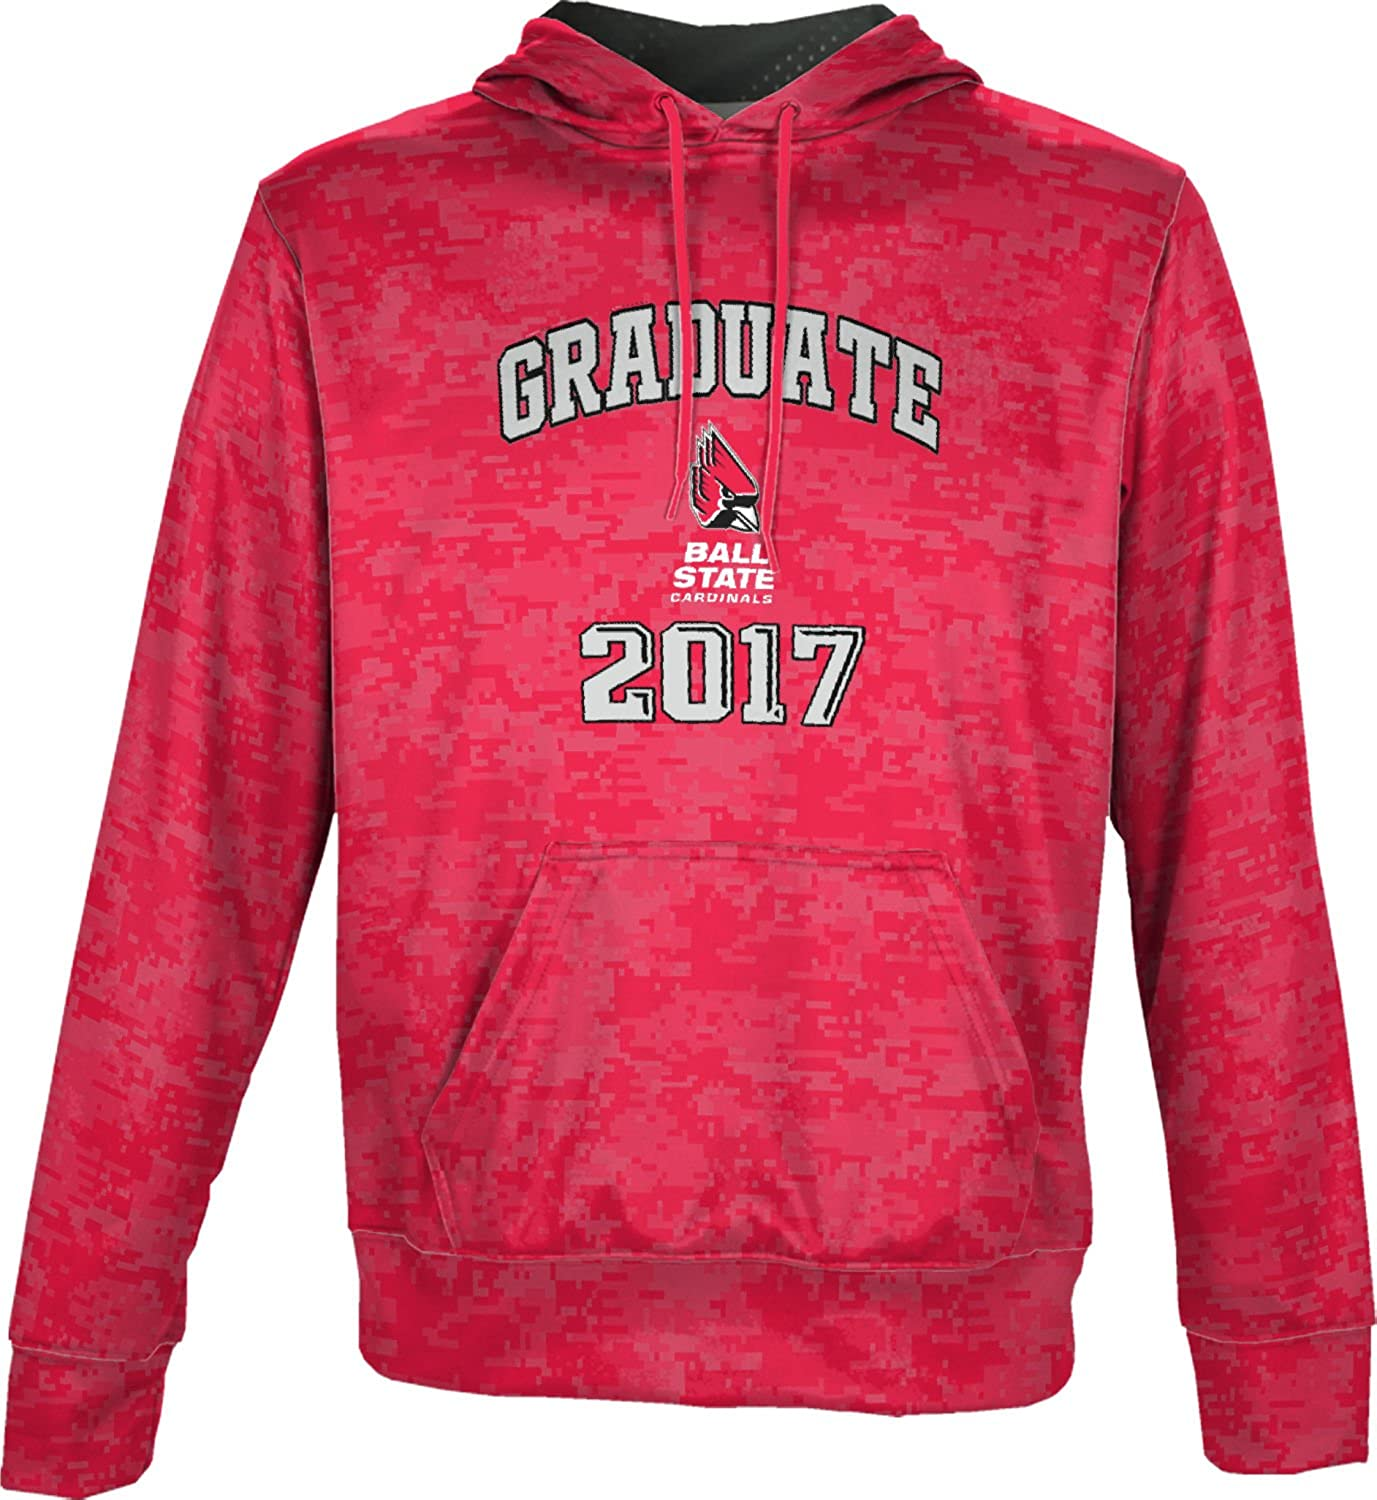 BSU Spectrum Sublimation Men/'s Ball State University Bold Long Sleeve